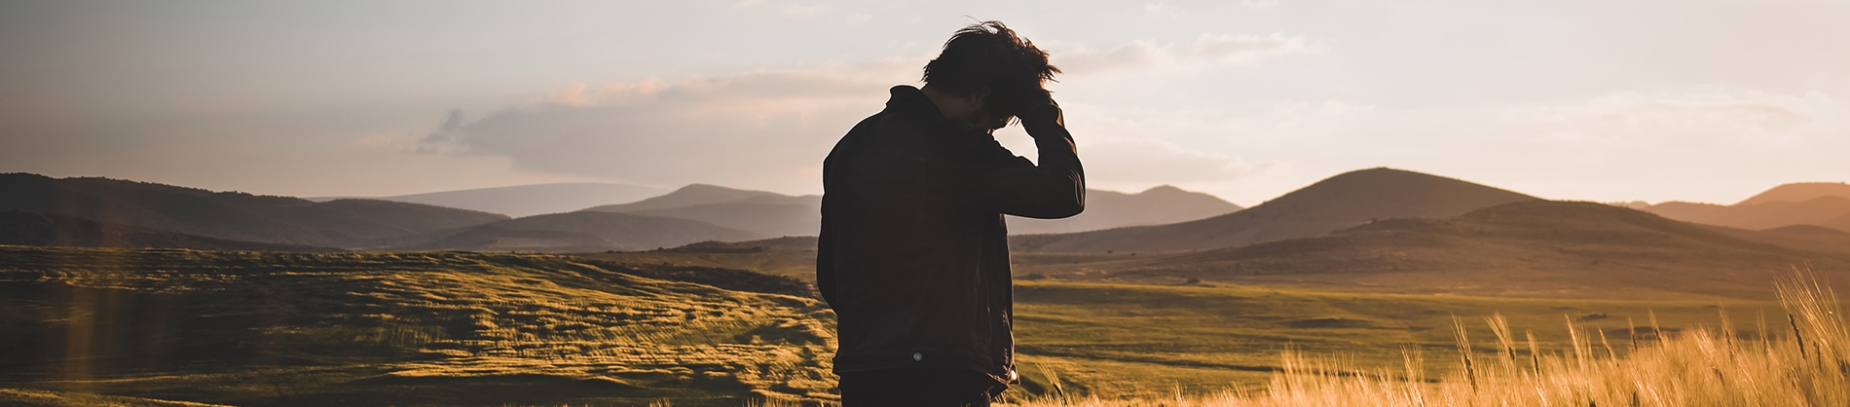 A man with his hand on his head looking out over a sunset and mountains